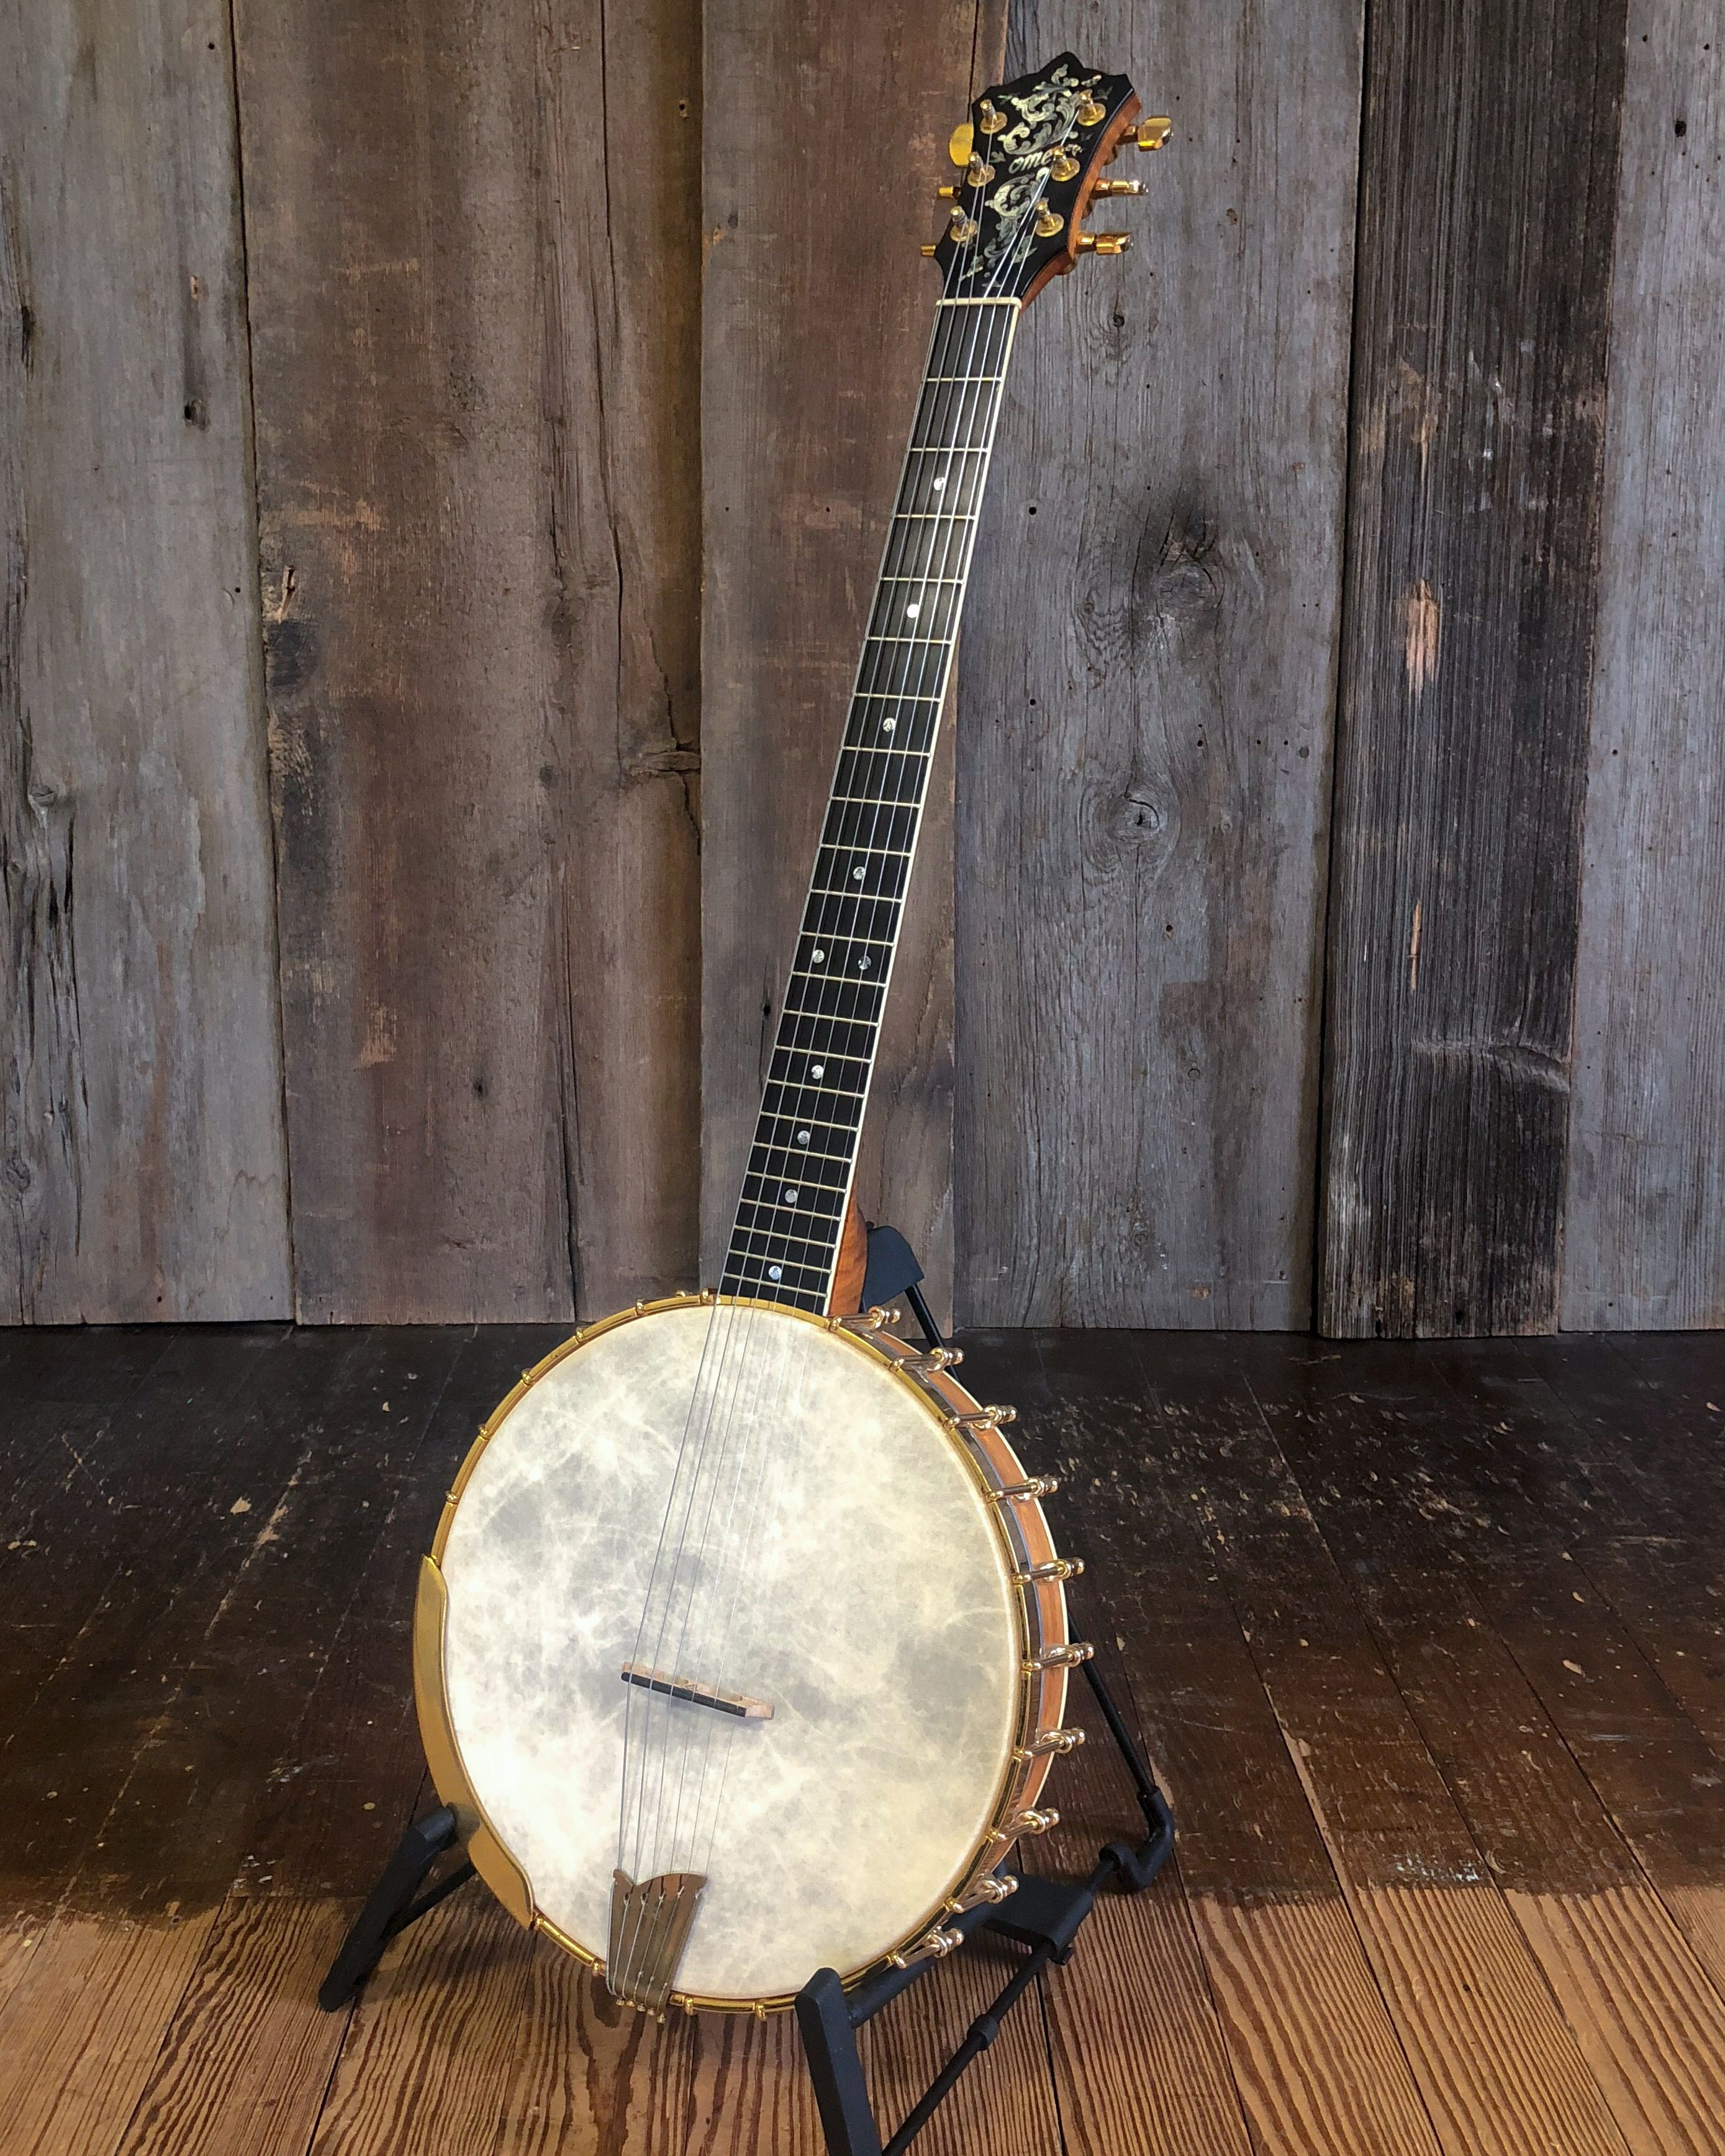 This OME Custom Gold Magician Banjo-Guitar features a 12